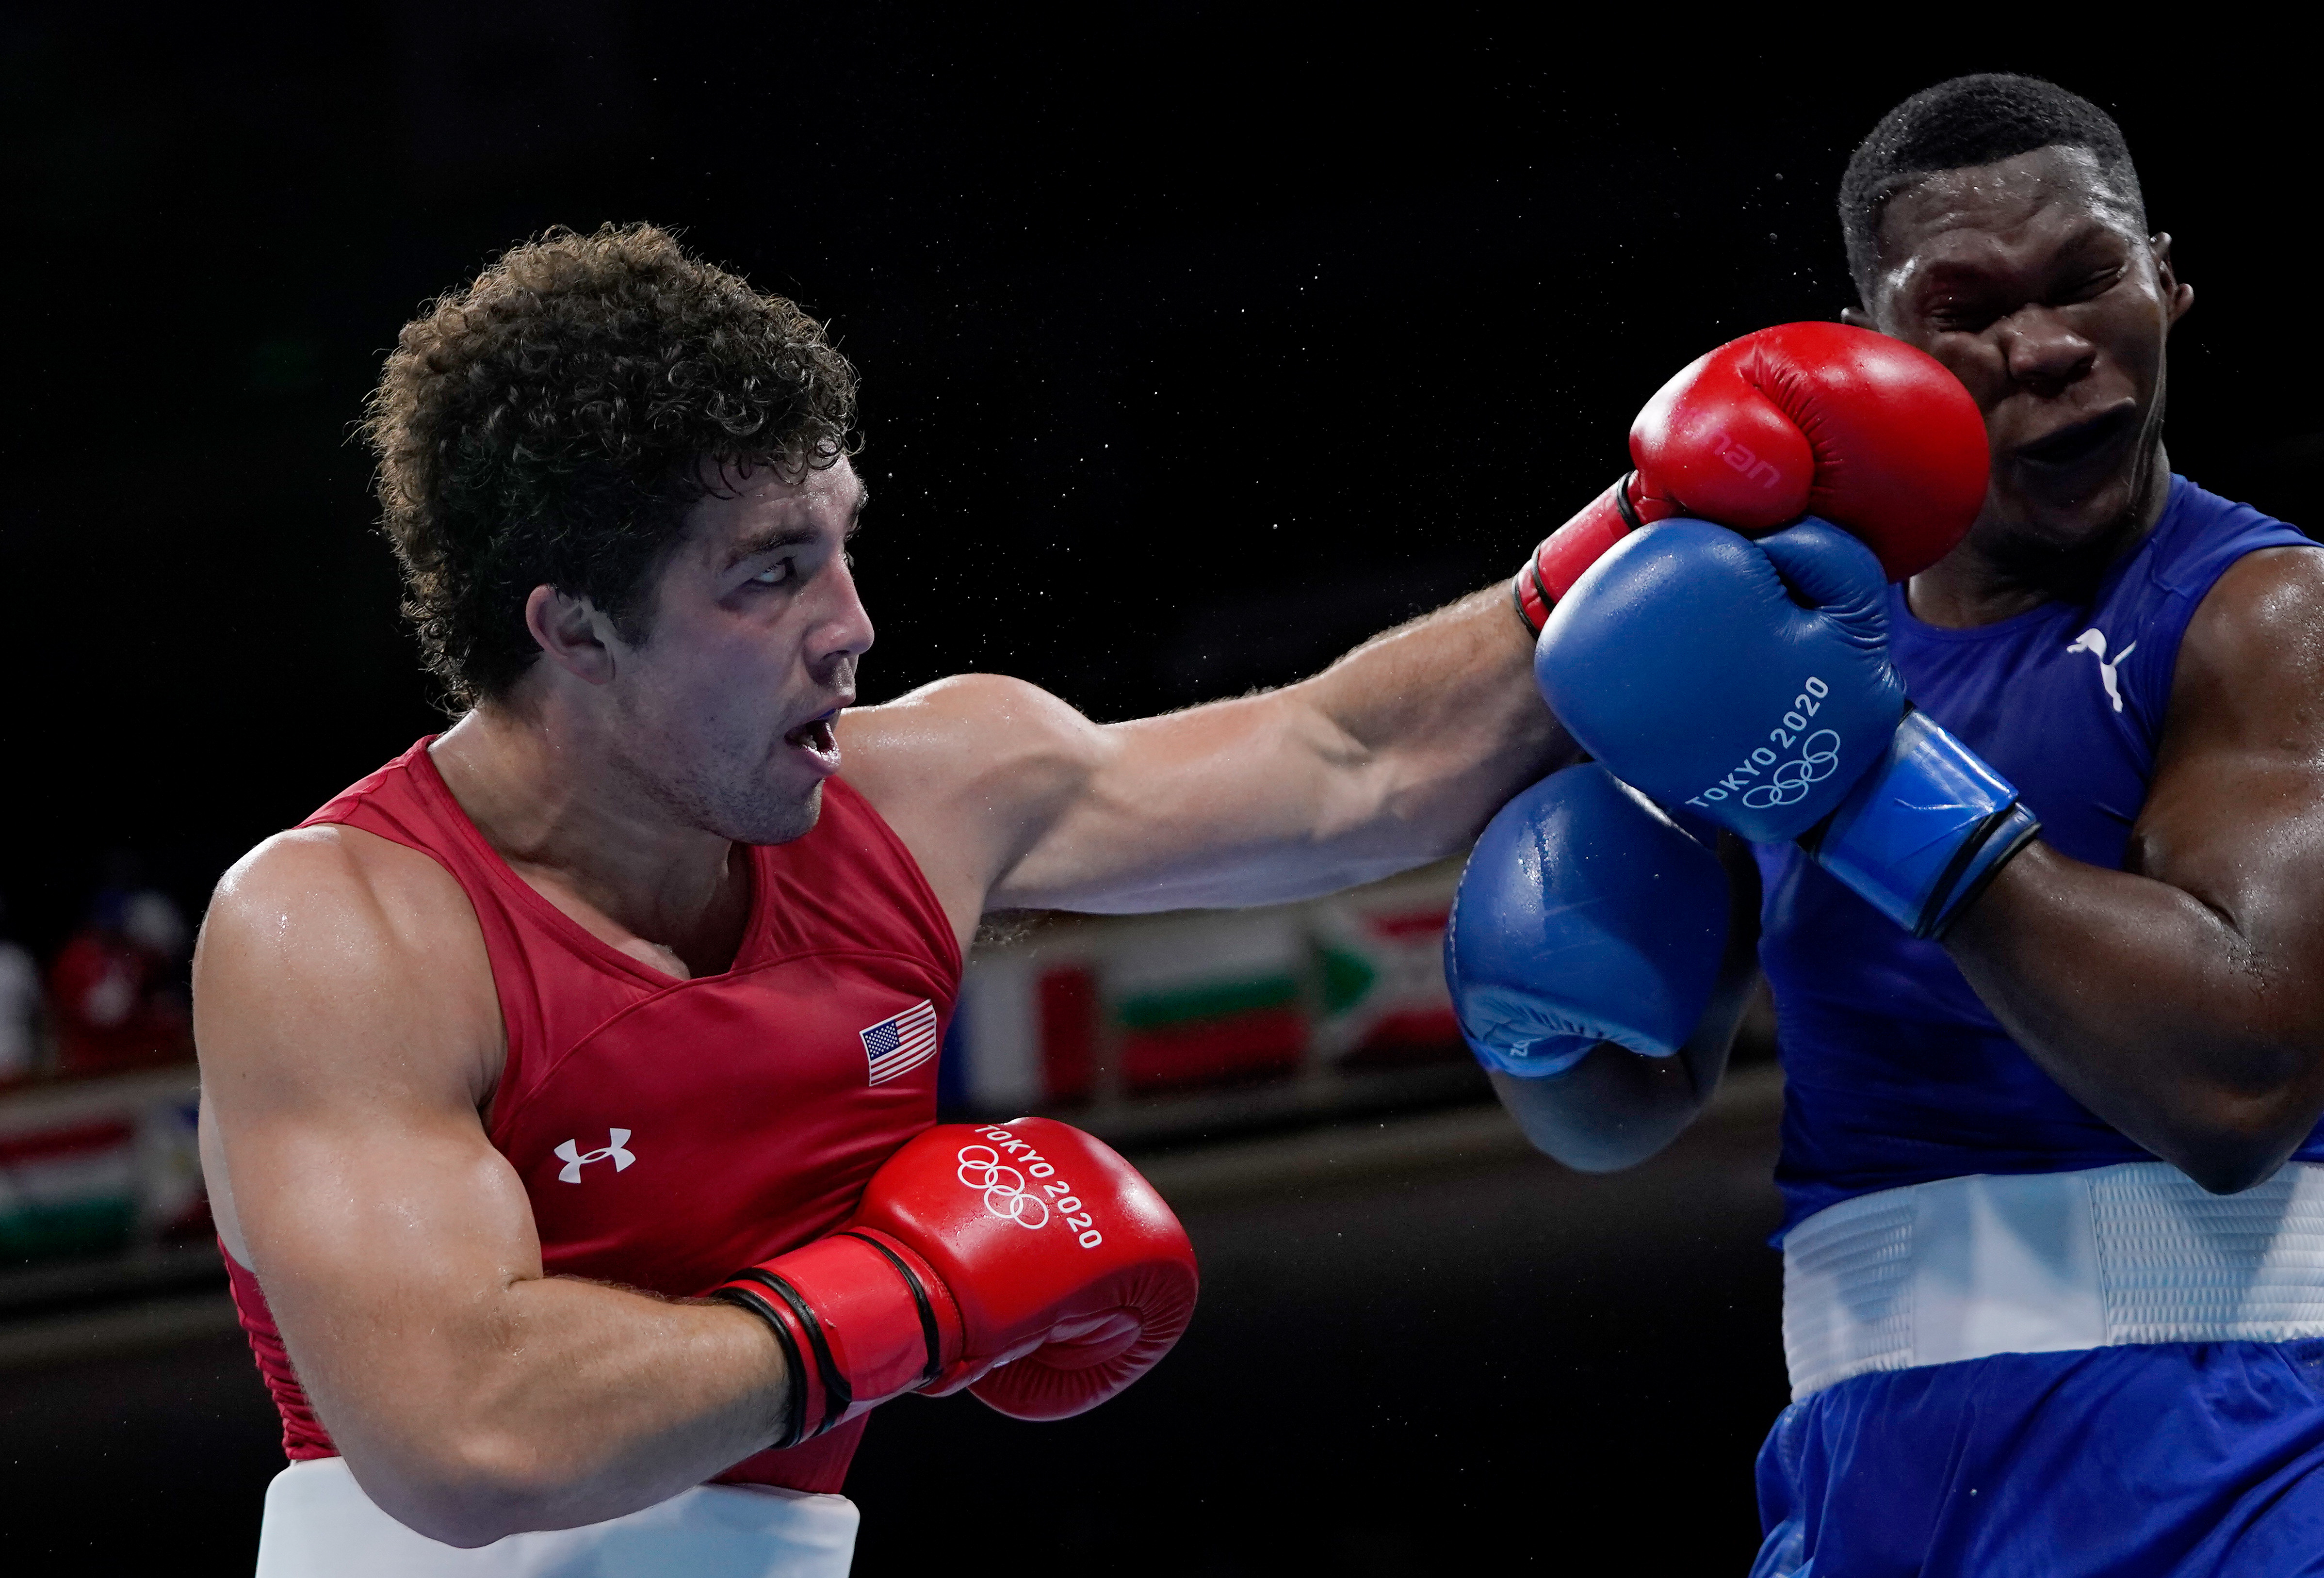 Richard Torrez Junior (red) of Team United States exchanges punches with Dainier Pero of Team Cuba during the Men's Super Heavy (+91kg) semi final on day nine of the Tokyo 2020 Olympic Games at Kokugikan Arena on August 01, 2021 in Tokyo, Japan.